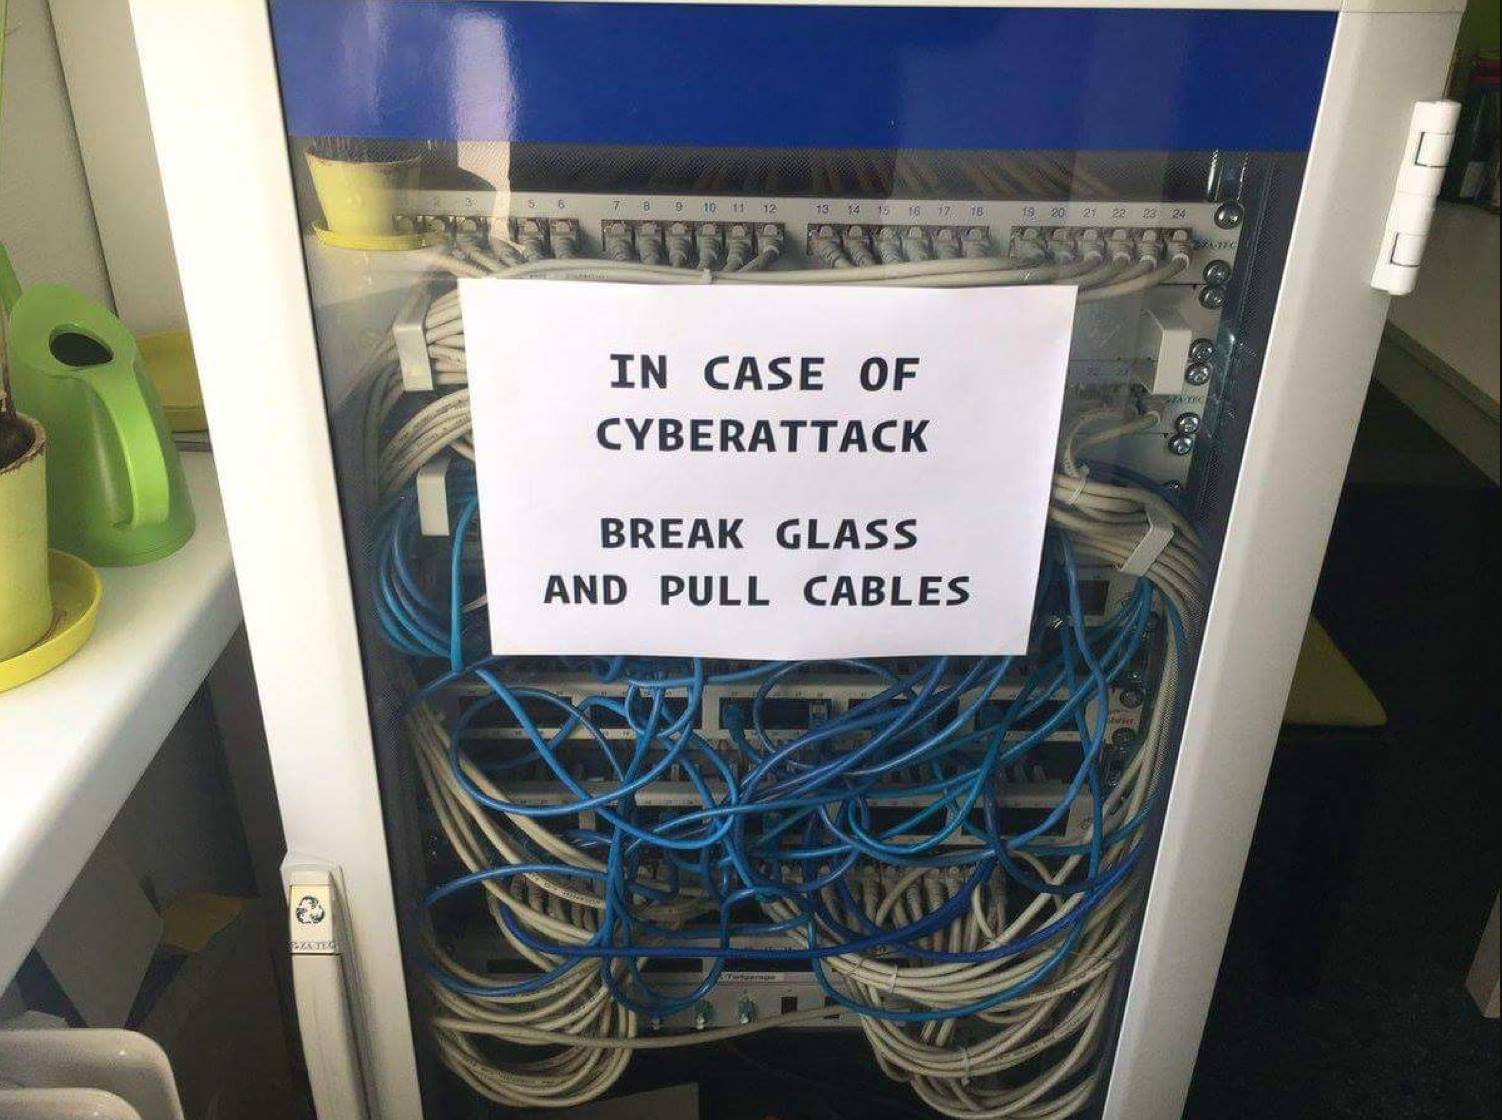 In case of cyberattack: Break glass and pull cables